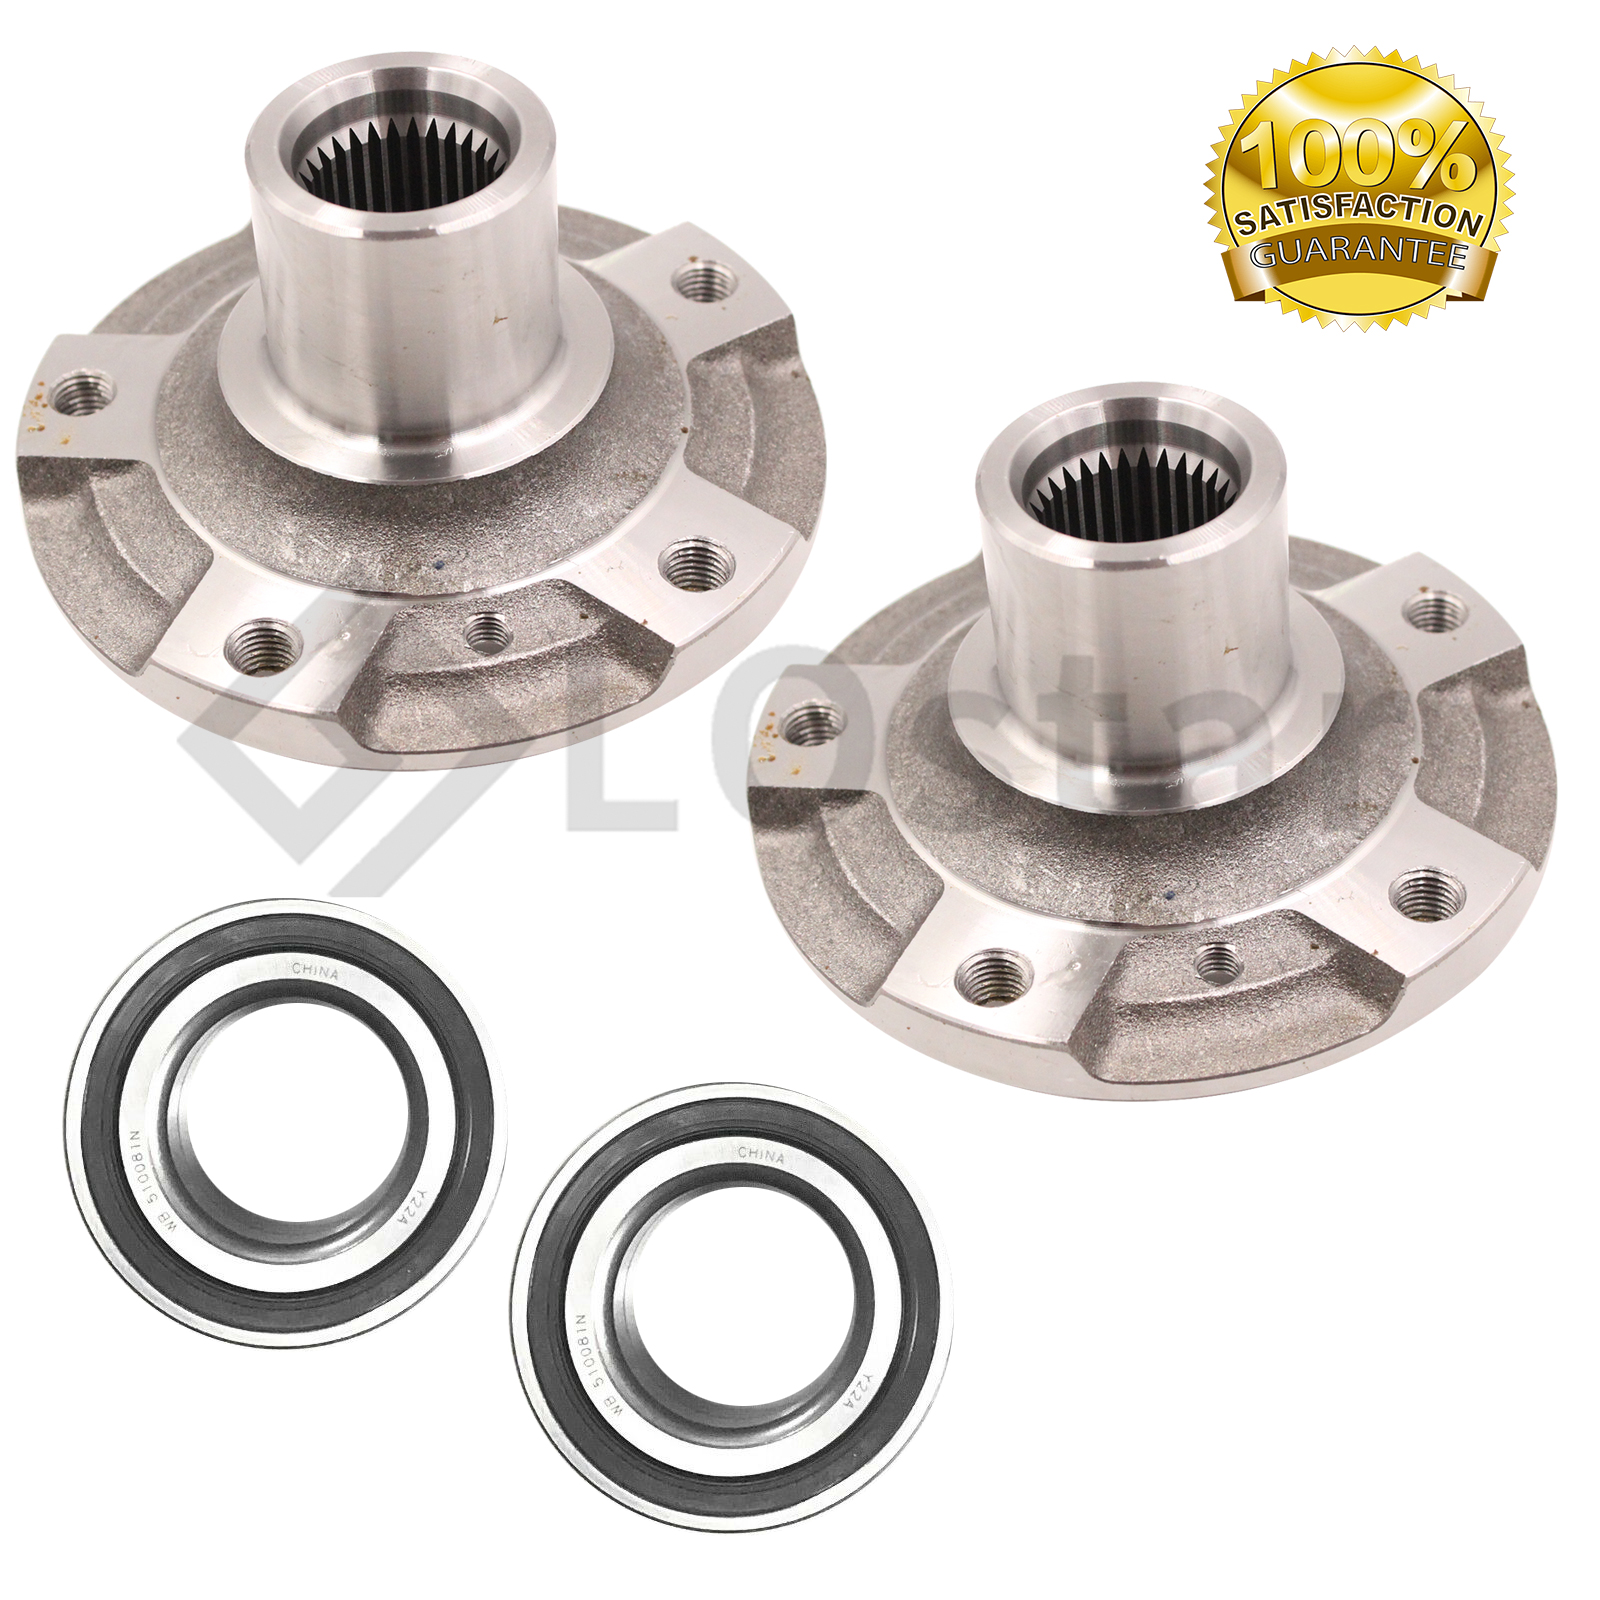 Included with Two Years Warranty Left and Right Note: 3 Bolt Mounting Flange - Brake Code 1ZF FWD - Two Bearings 2007 fits Volkswagen Rabbit Front Wheel Bearing and Hub Assembly